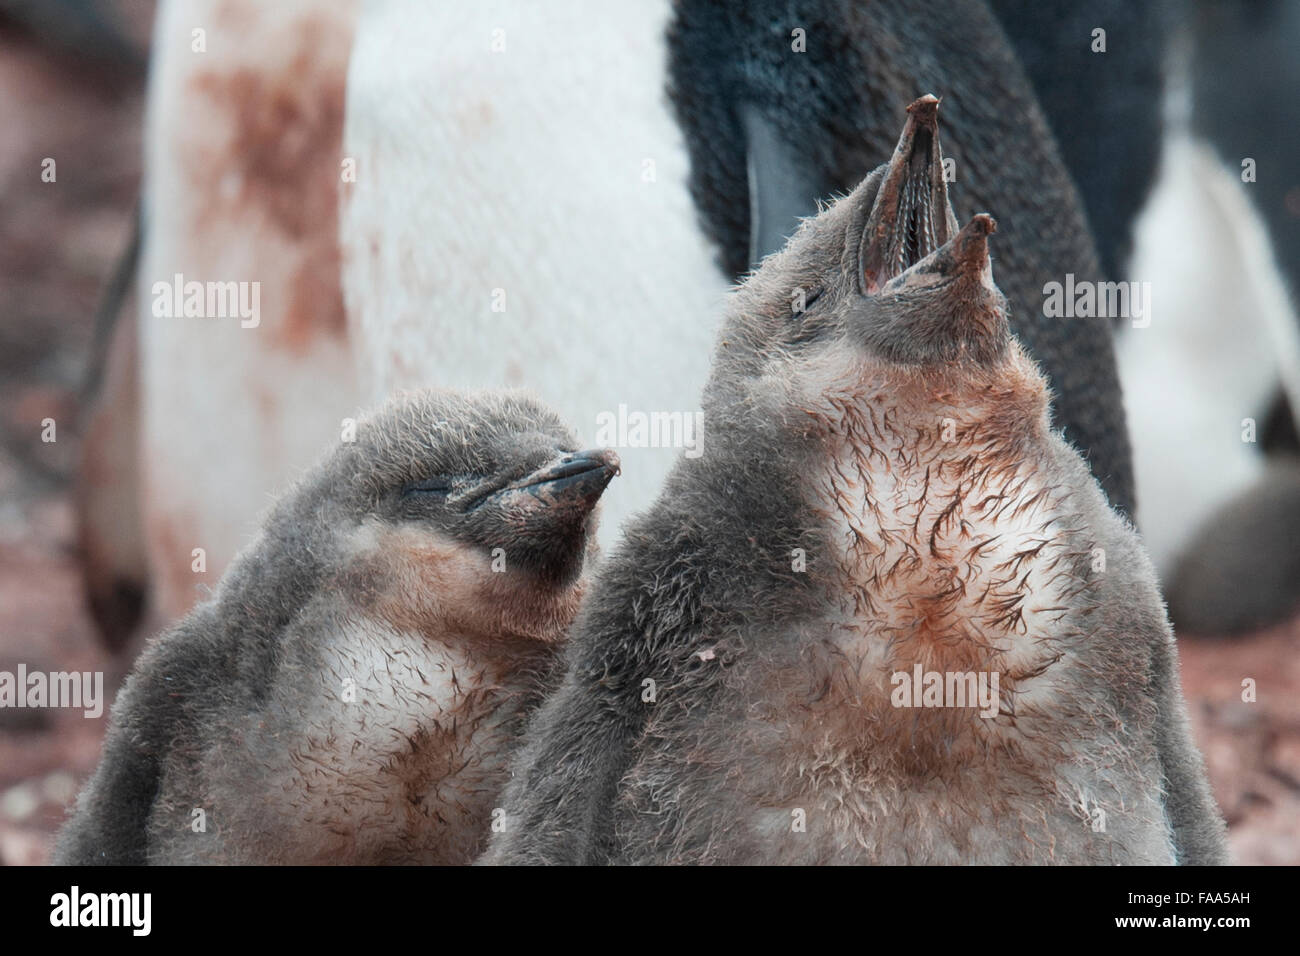 Chinstrap Penguin family with two chicks, (Pygoscelis antarcticus), Hannah Point, Antarctic Peninsula. - Stock Image